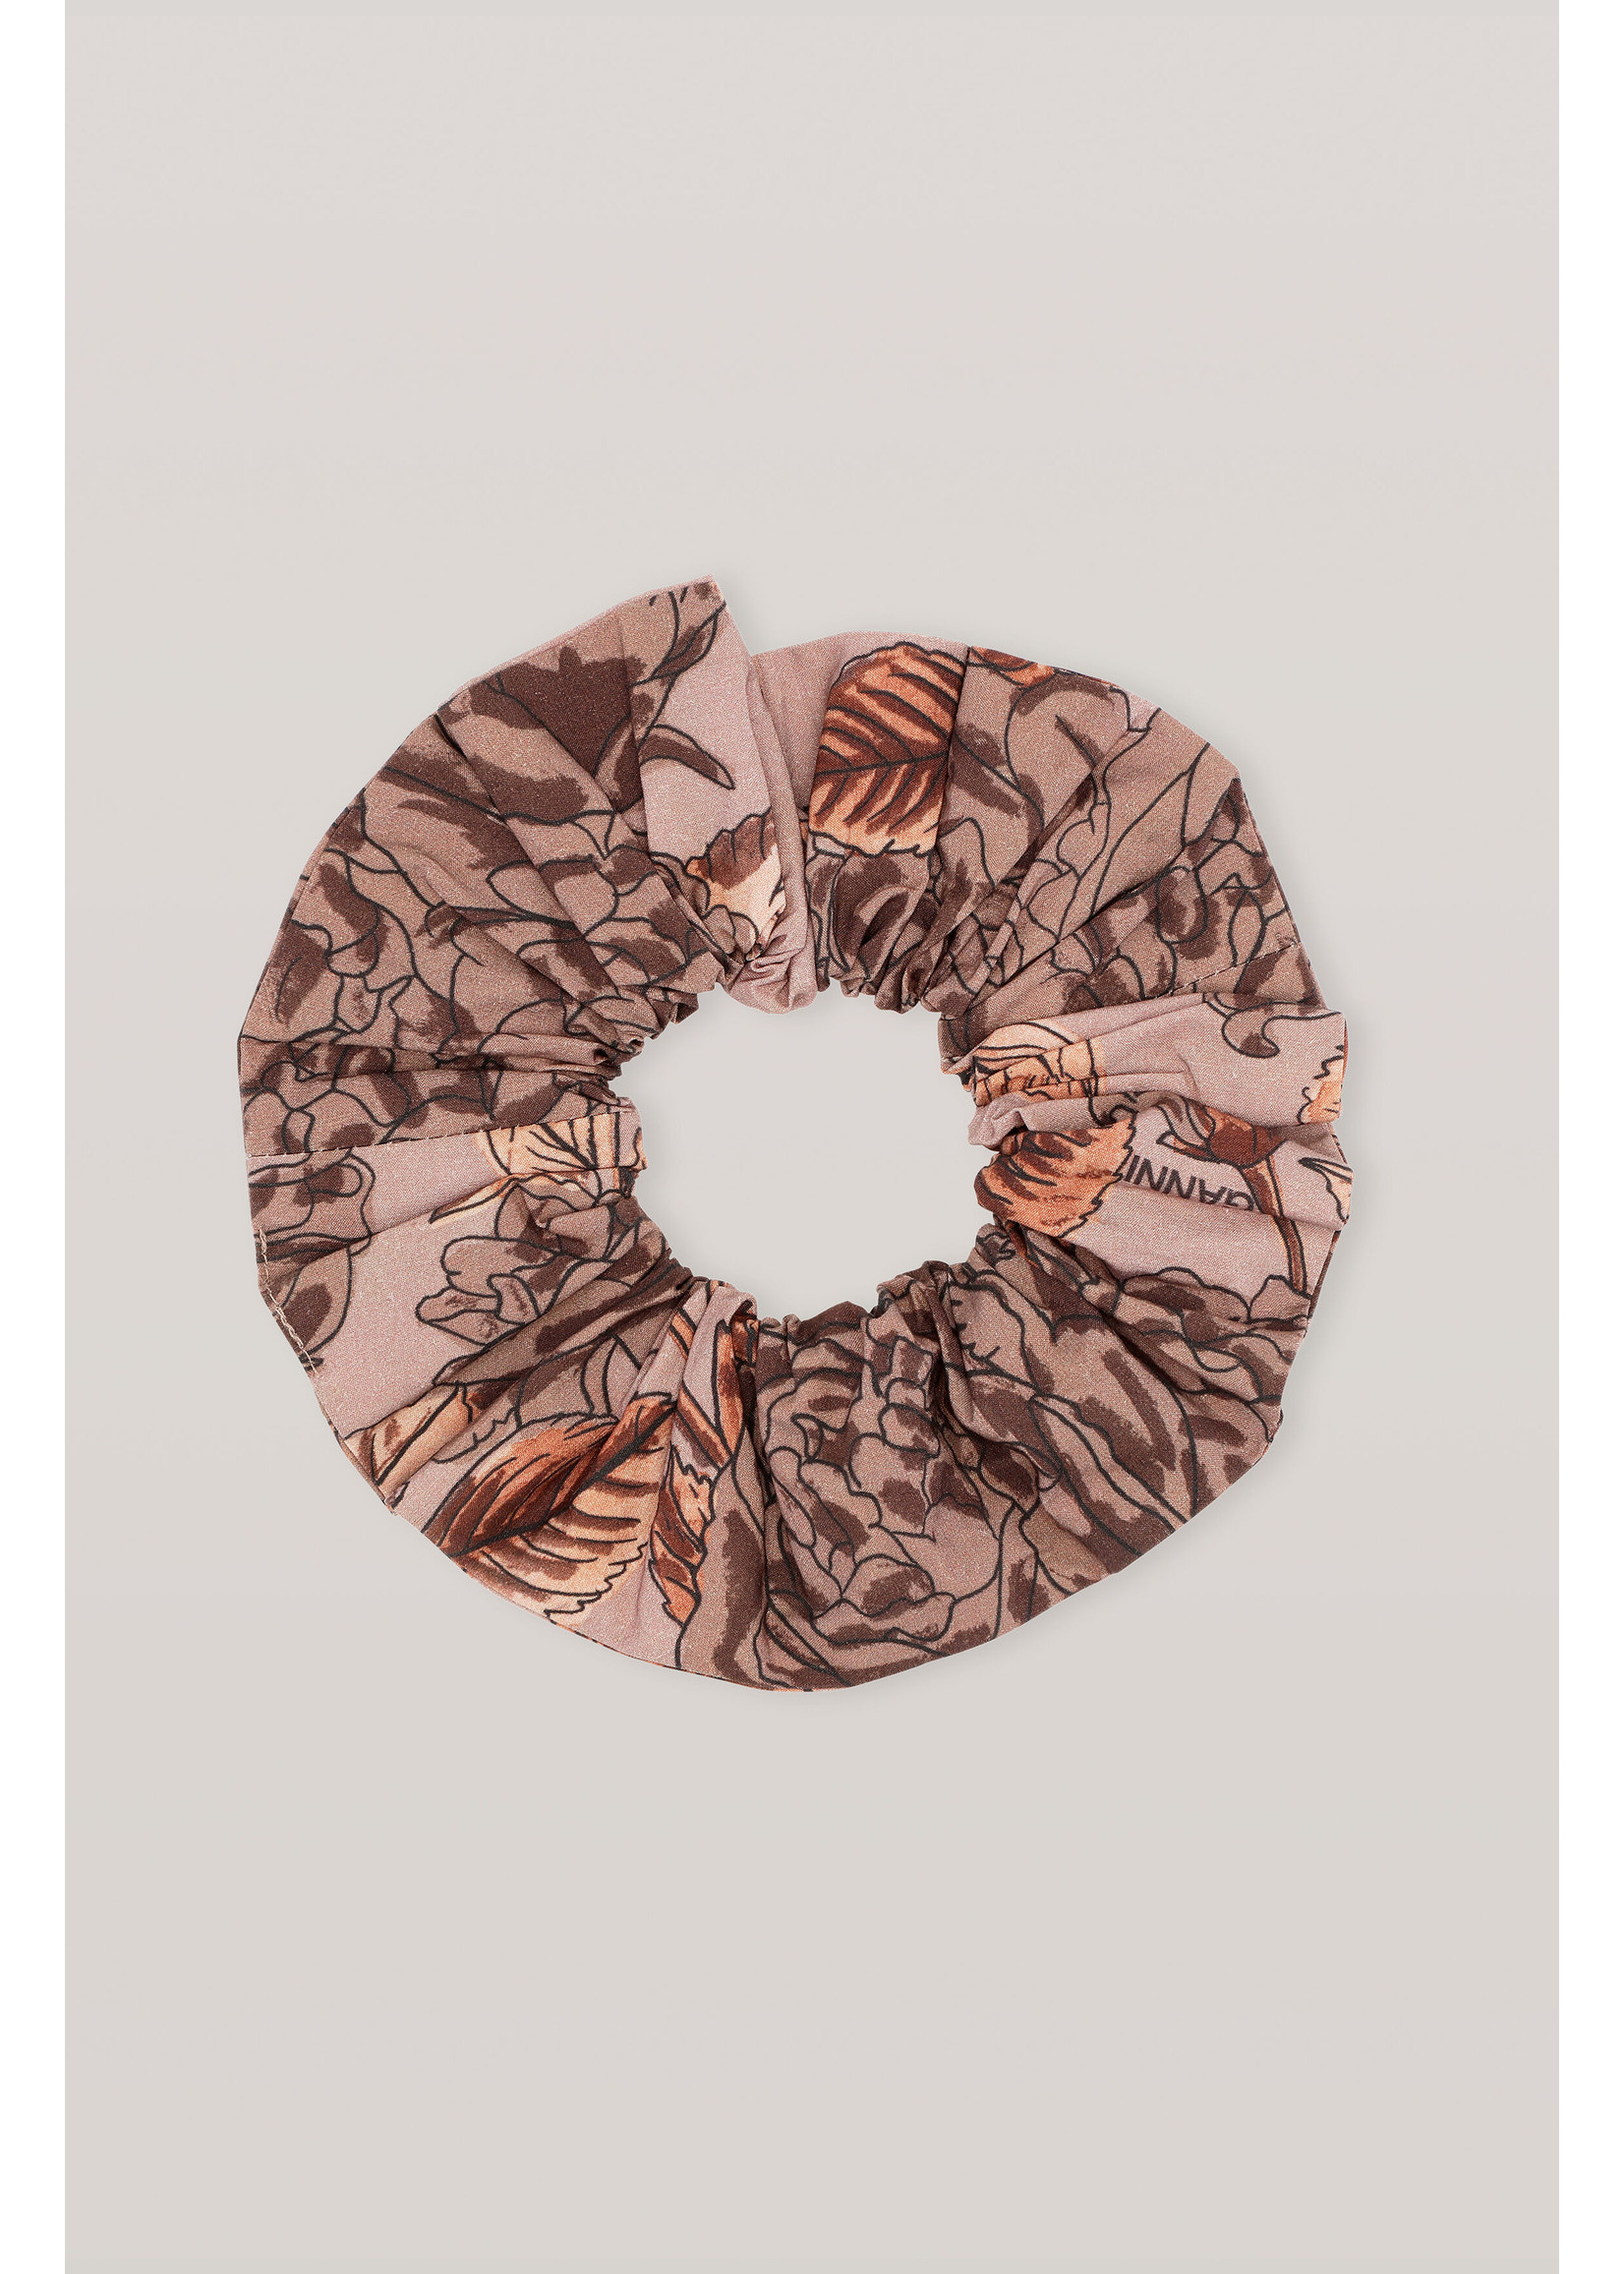 GANNI Floral Scrunchie in Fossil